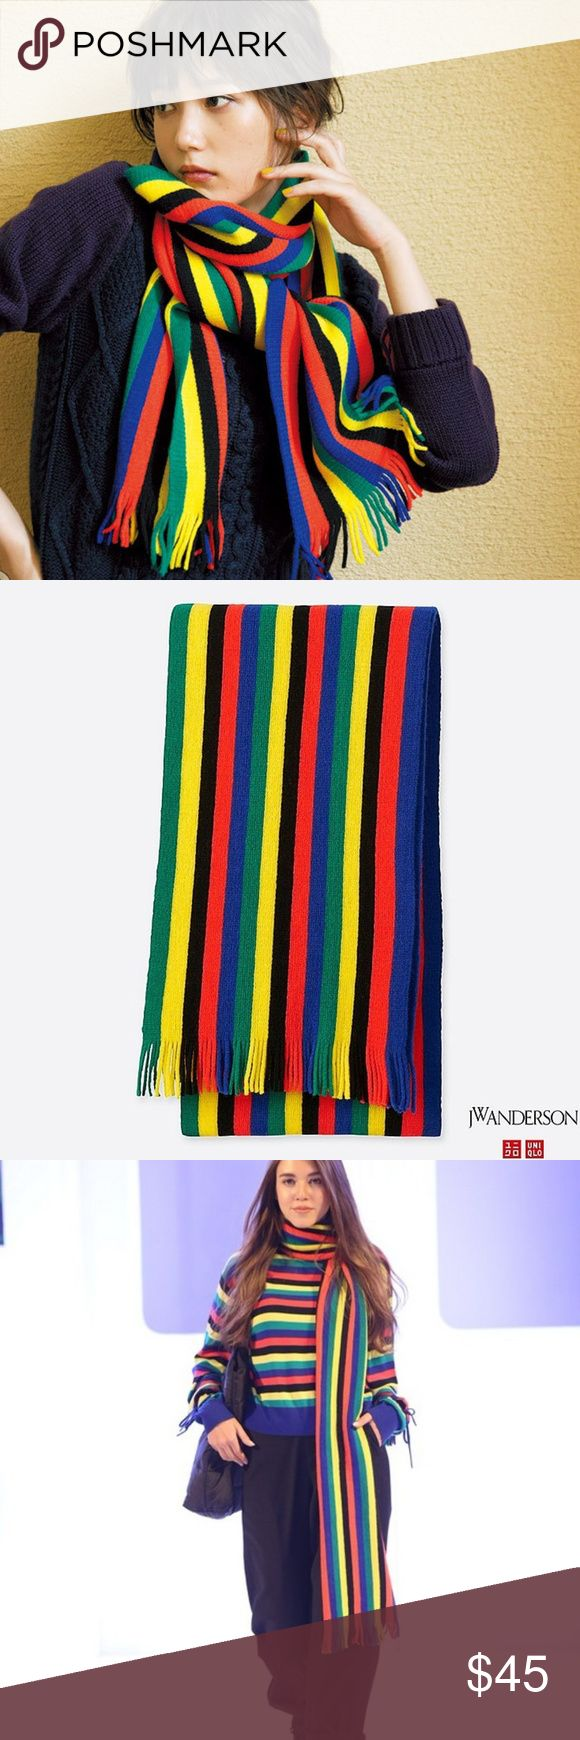 Multicolor Striped Wool Blend Scarf Unisex Condition: Brand new with tags. Sold Out.  Features:  * JW Anderson x Uniqlo collboration * One of the most coveted item form the collection * Vibrant colors * Wool, Acrylic, Nylon blend * 10.6inch x 74.8inch + 2inch x 2 J.W. Anderson Accessories Scarves & Wraps